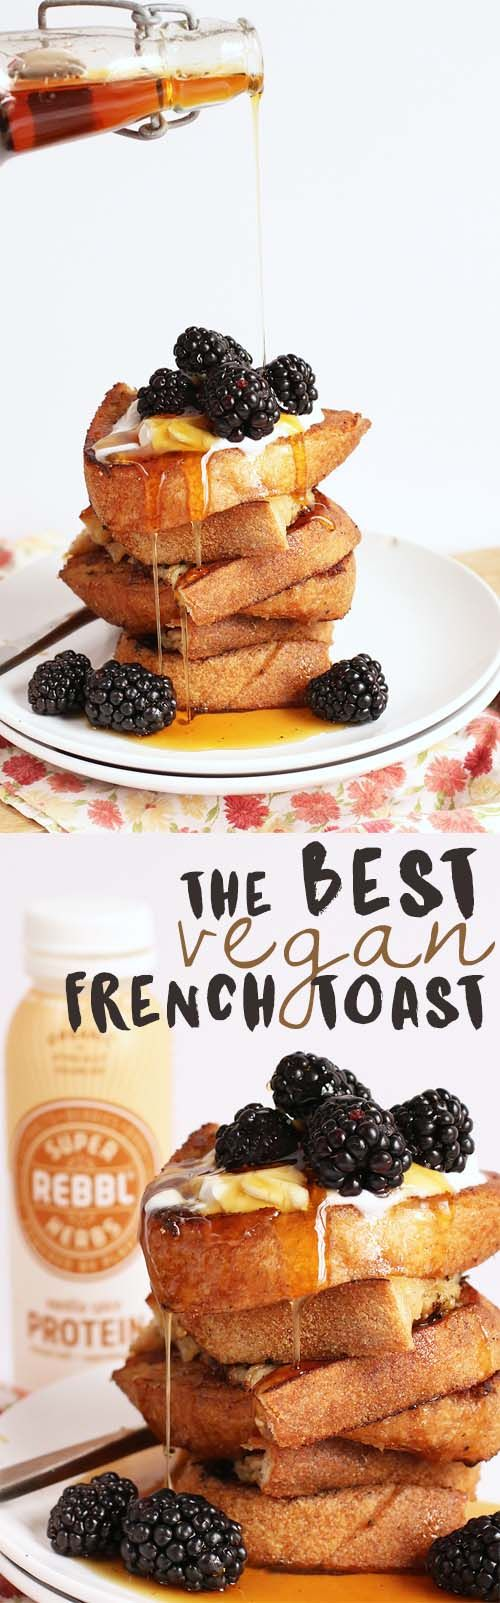 This Vanilla Spice French Toast is made with just 4 simple ingredients for a decadent and delicious vegan brunch